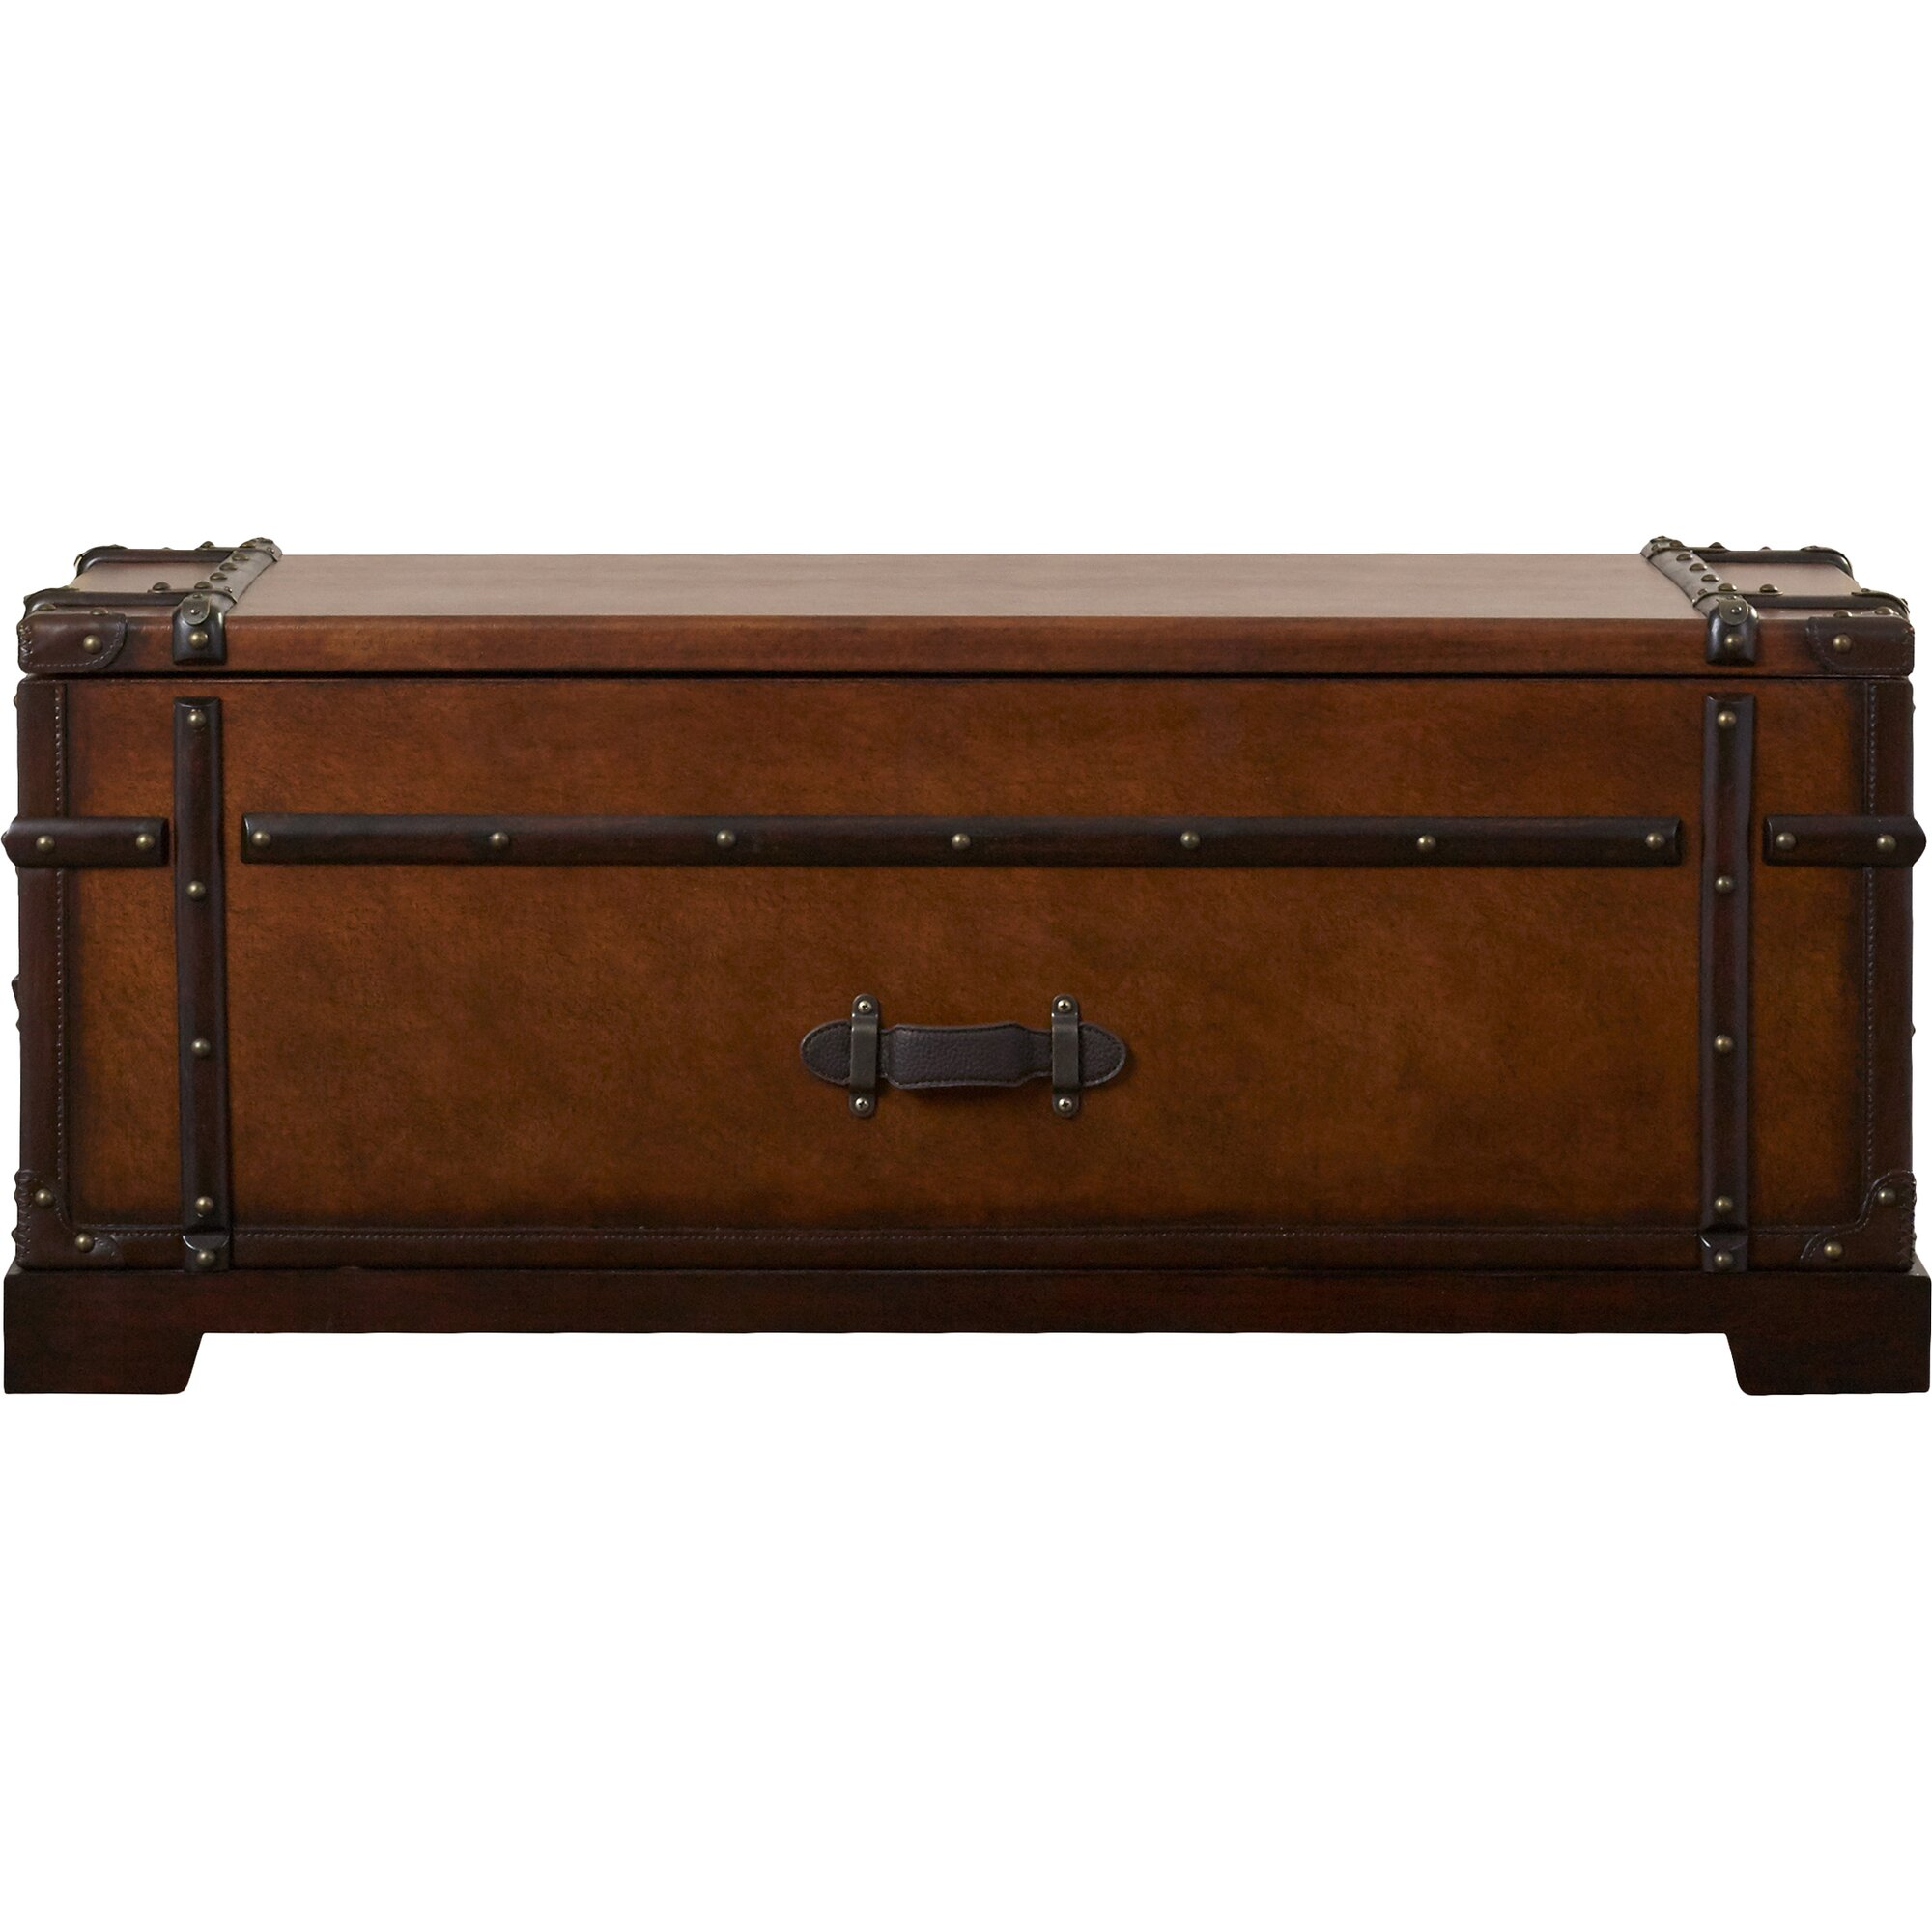 Darby home co delavan coffee table trunk with lift top for Glass trunk coffee table